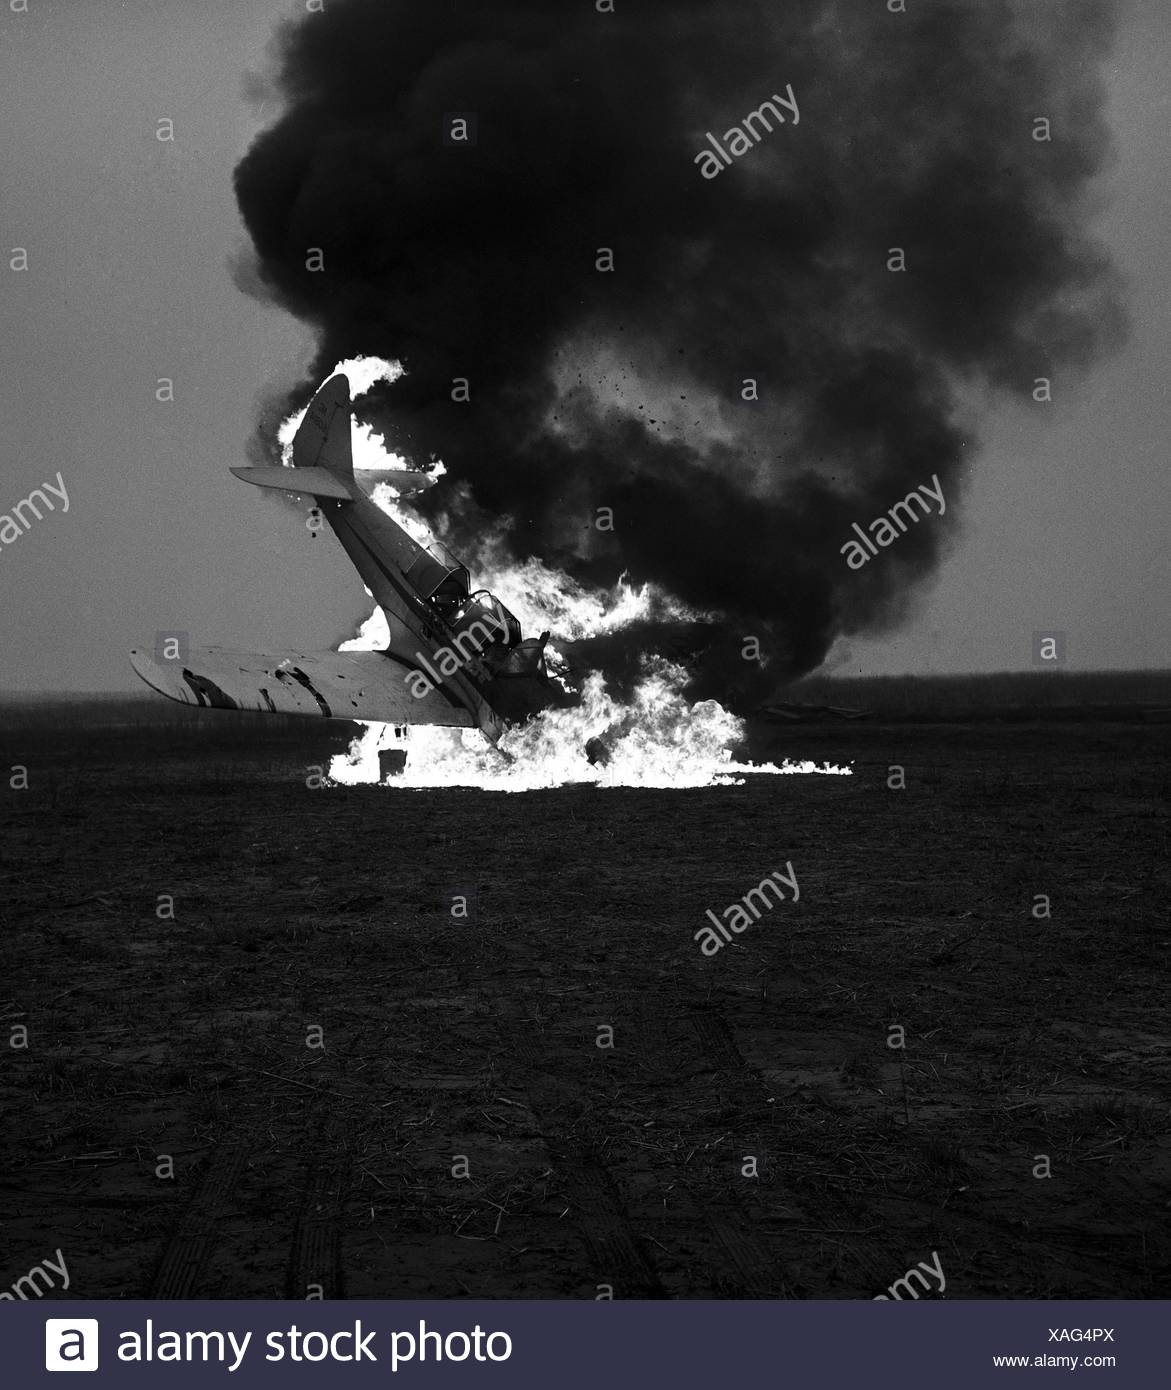 Crashed airplane exploding - Stock Image